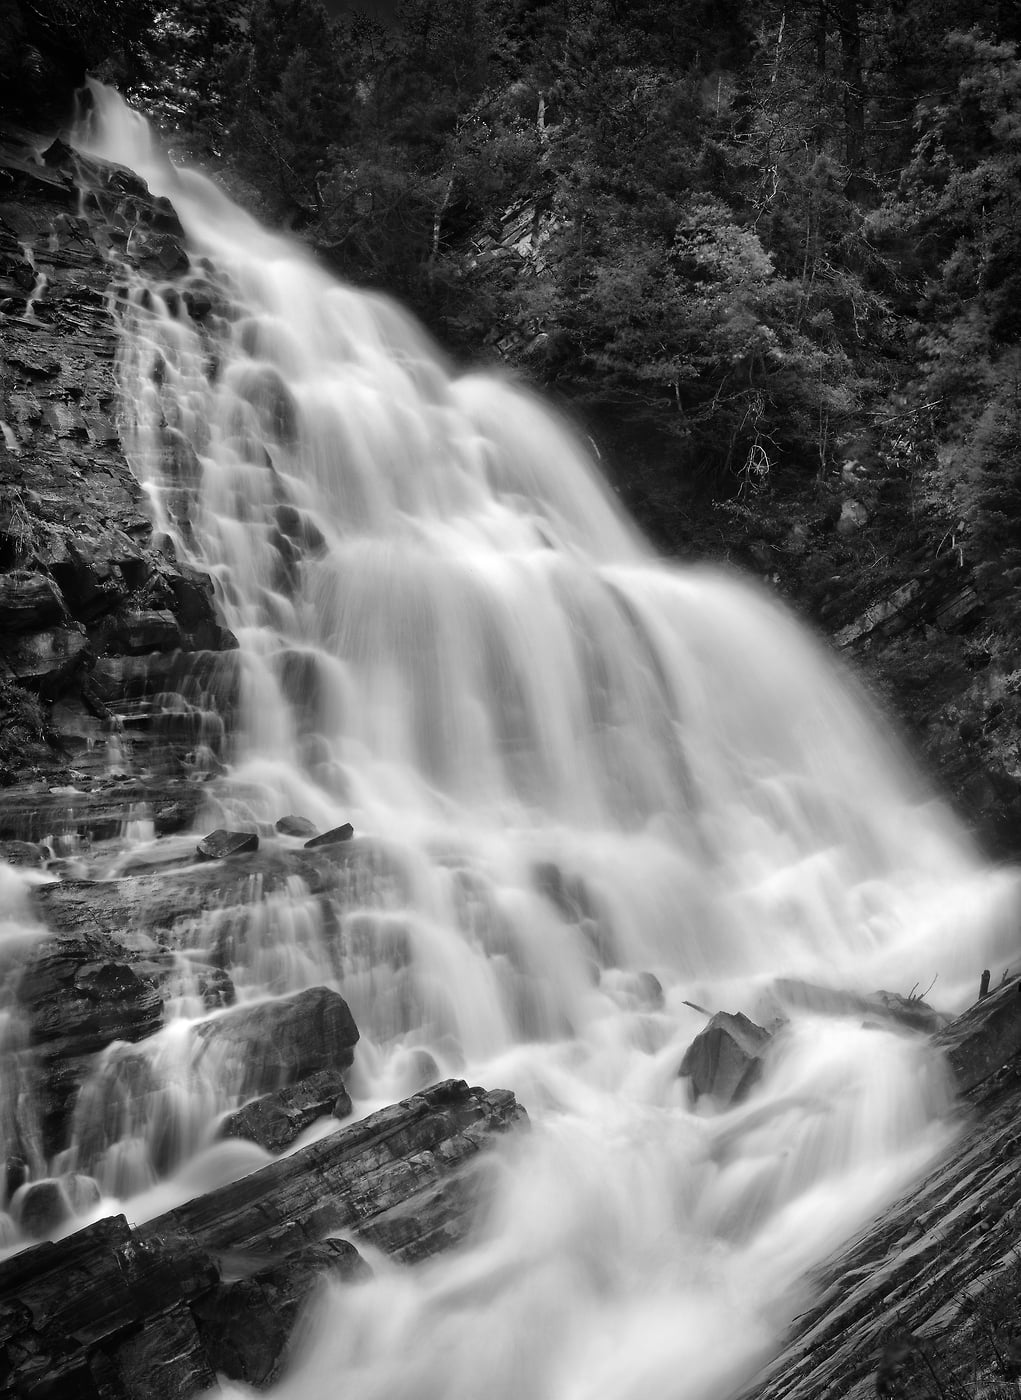 A very high resolution, large-format VAST photo print of the Bertha Falls waterfall in Waterton Lakes National Park; fine art nature photograph created by Steven Webster in Alberta, Canada